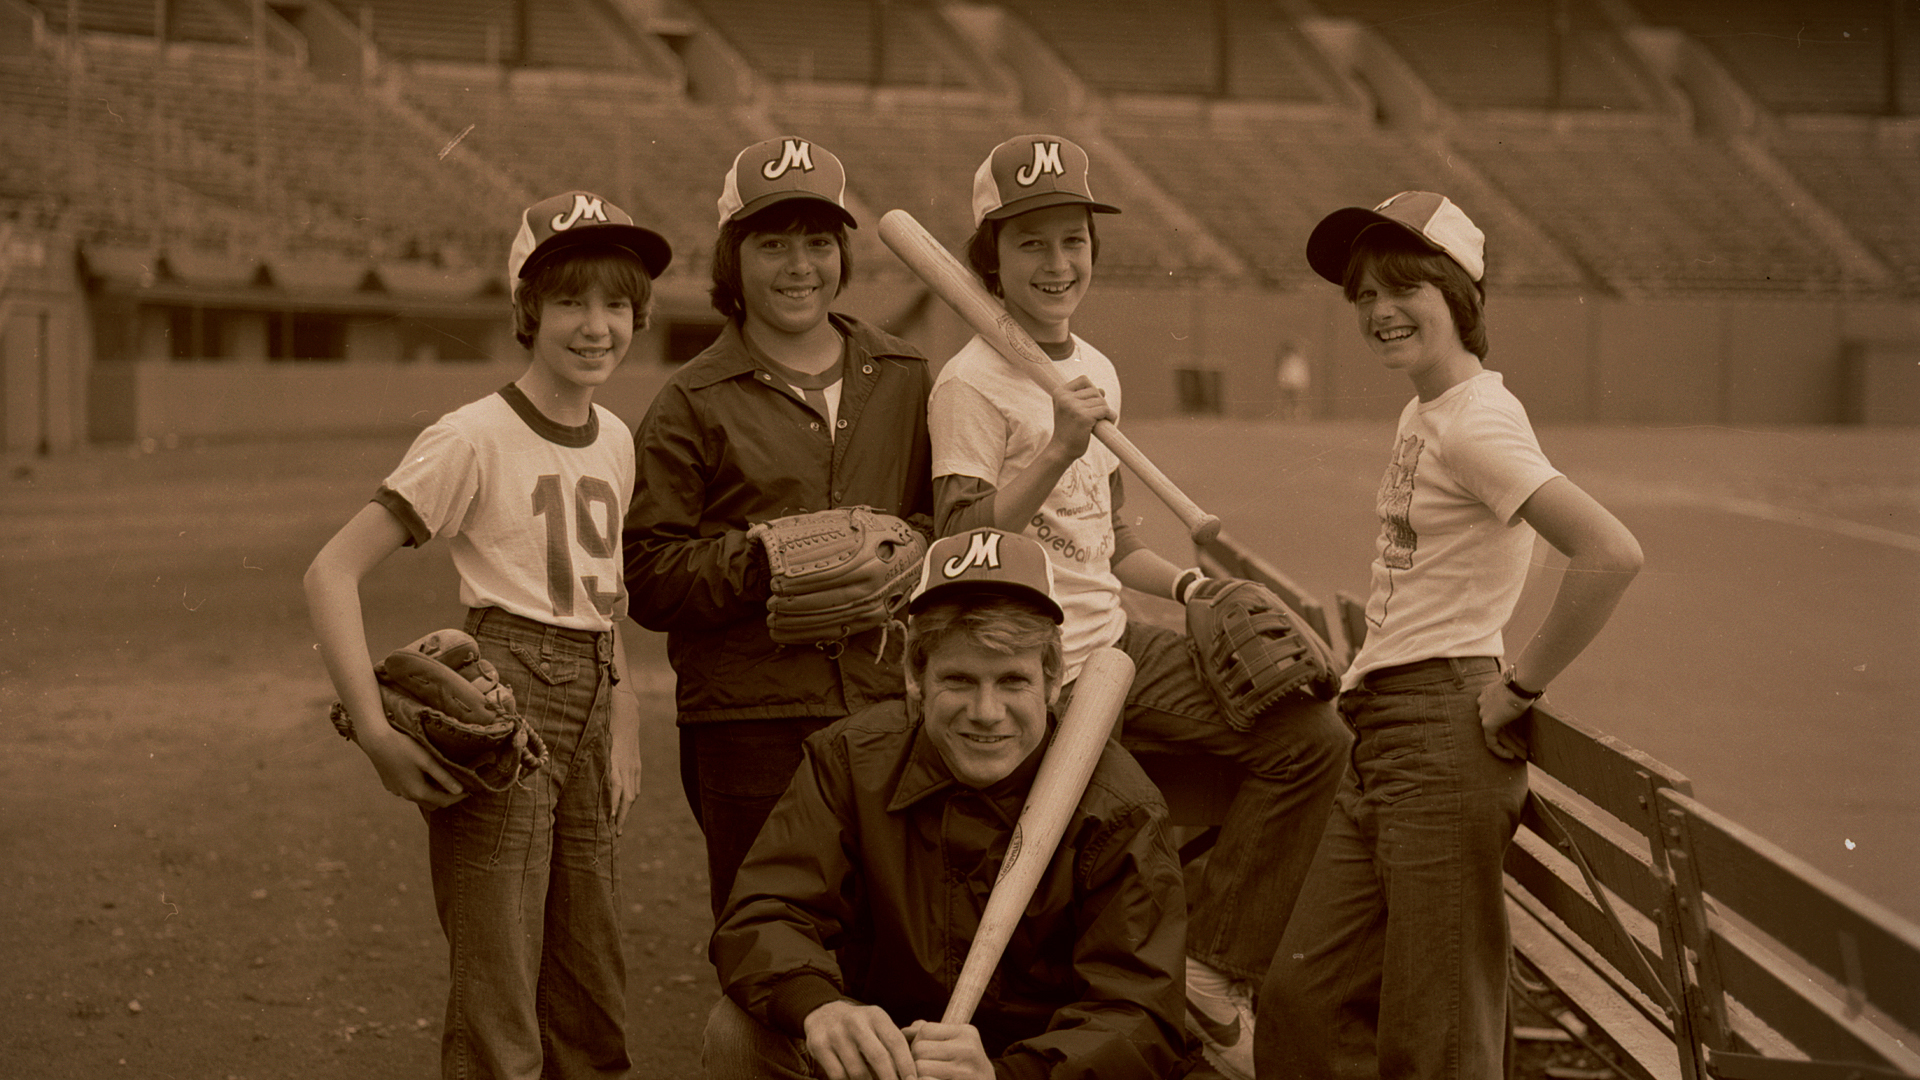 Rob Nelson and campers in an undated photo. Nelson also held camps at Civic Stadium in Portland, Oregon, as part of his Little Mavericks baseball program.